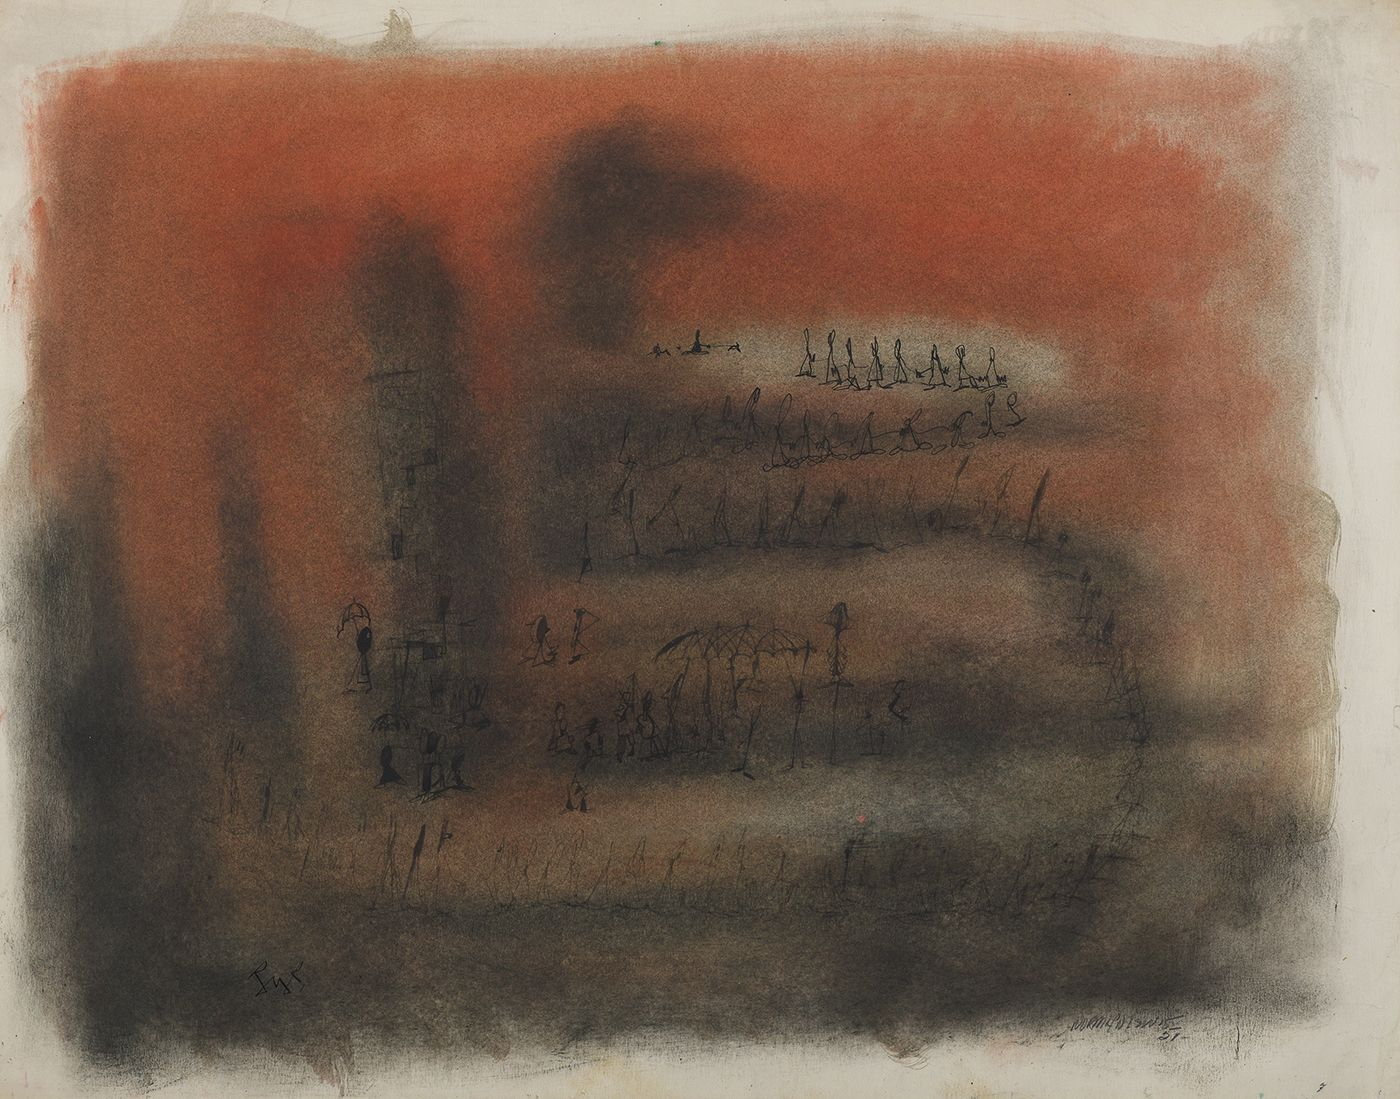 Norman Lewis, Figures on an Orange Ground, 1951  Mixed media on paper  16-1/2 X 21-3/4  Signed and dated lower right. Abstract work with soft marks and uneven edges in shades of black and orange. Norman Lewis was a vital member of the first generation of abstract expressionists. He was the sole African American artist of his generation and his art derived from his interests in music and equality issues.